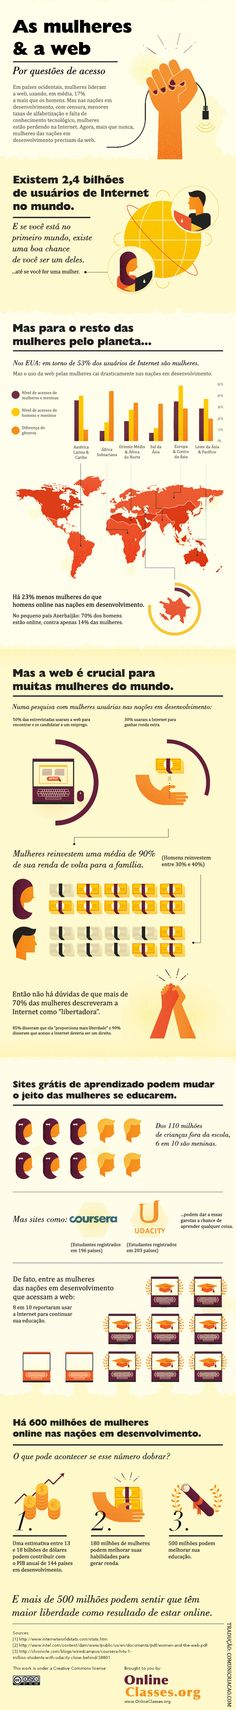 infografico mulheres